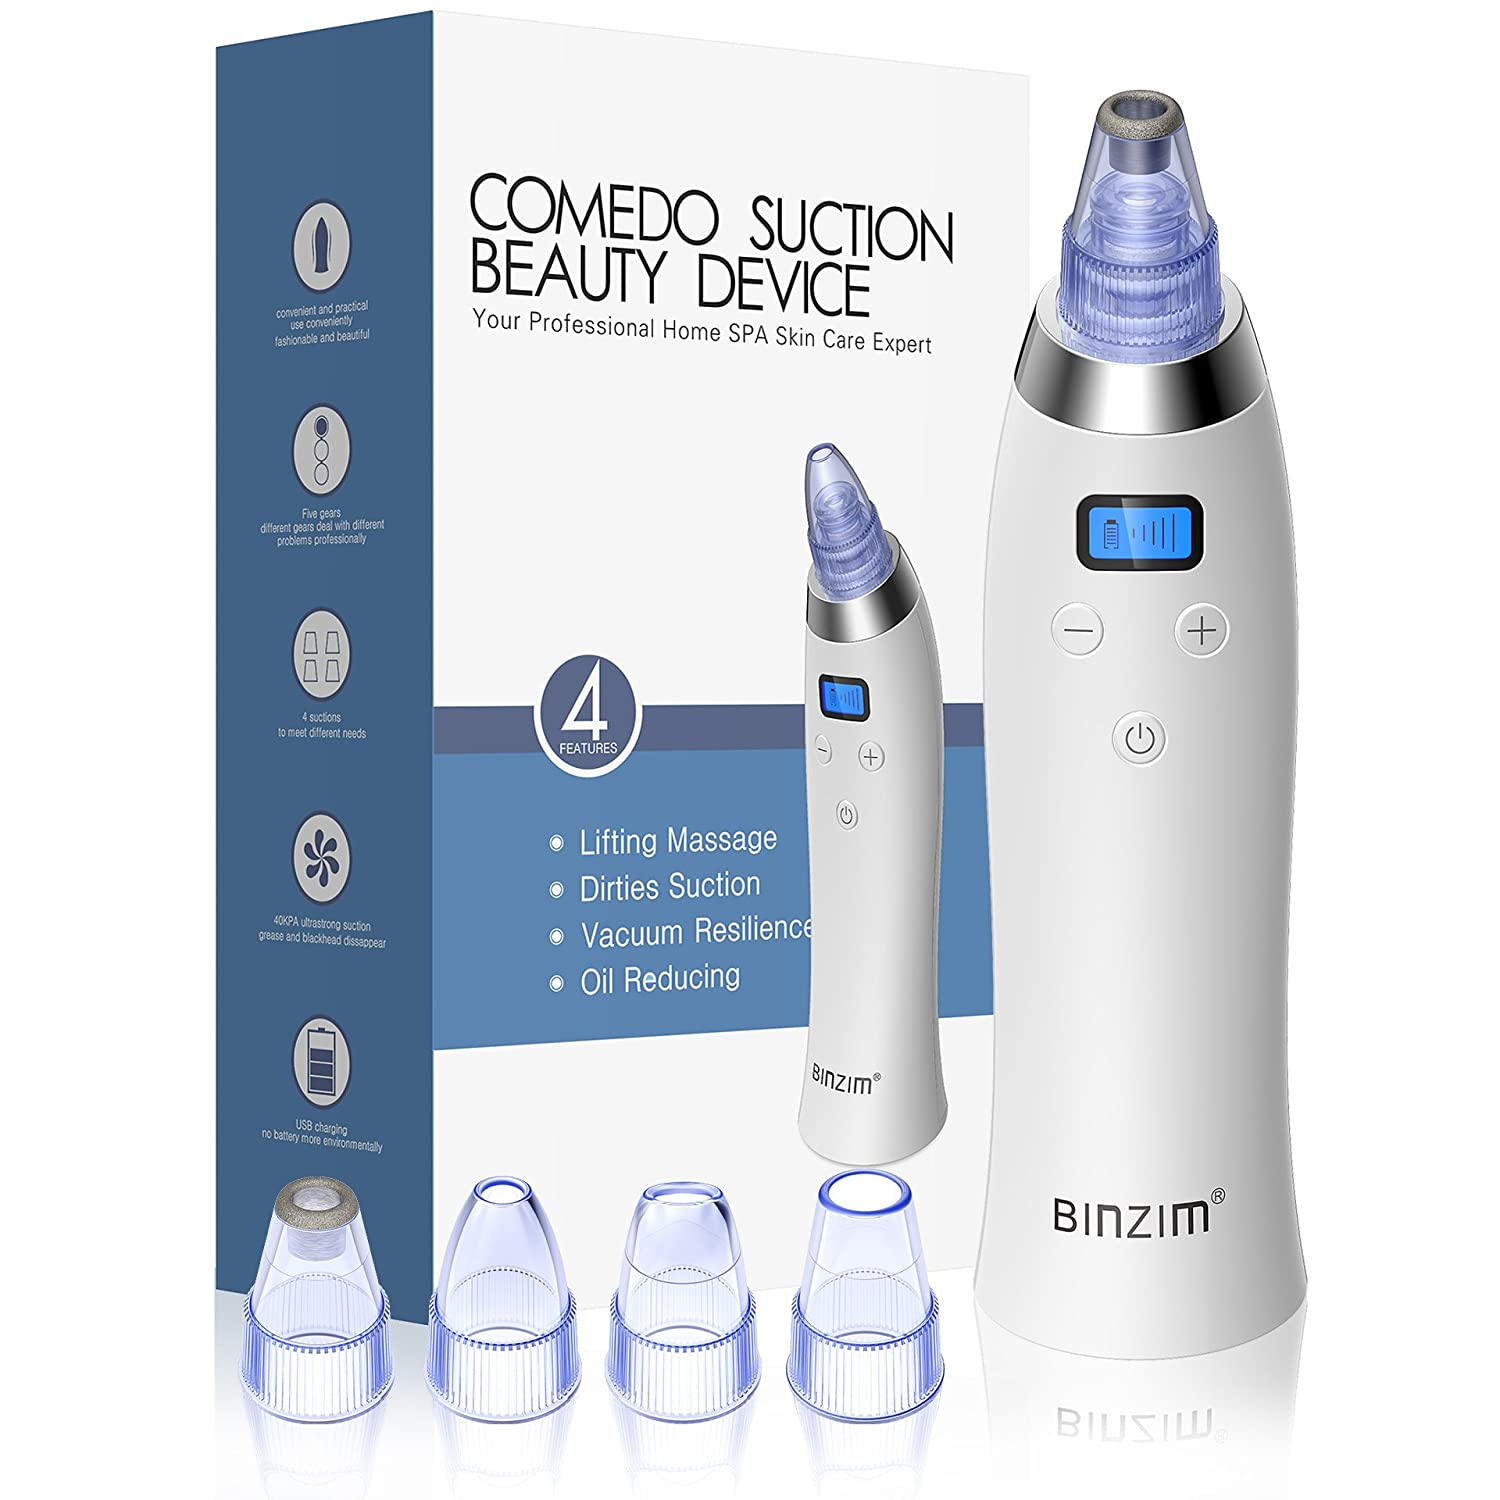 Blackhead Remover,Vacuum Blackhead Suction USB Rechargeable Extractor Tool with 4 Multi-Functional Probe, BINZIM Microdermabrasion Comedone Machine for Acne and Facial Pore Clean